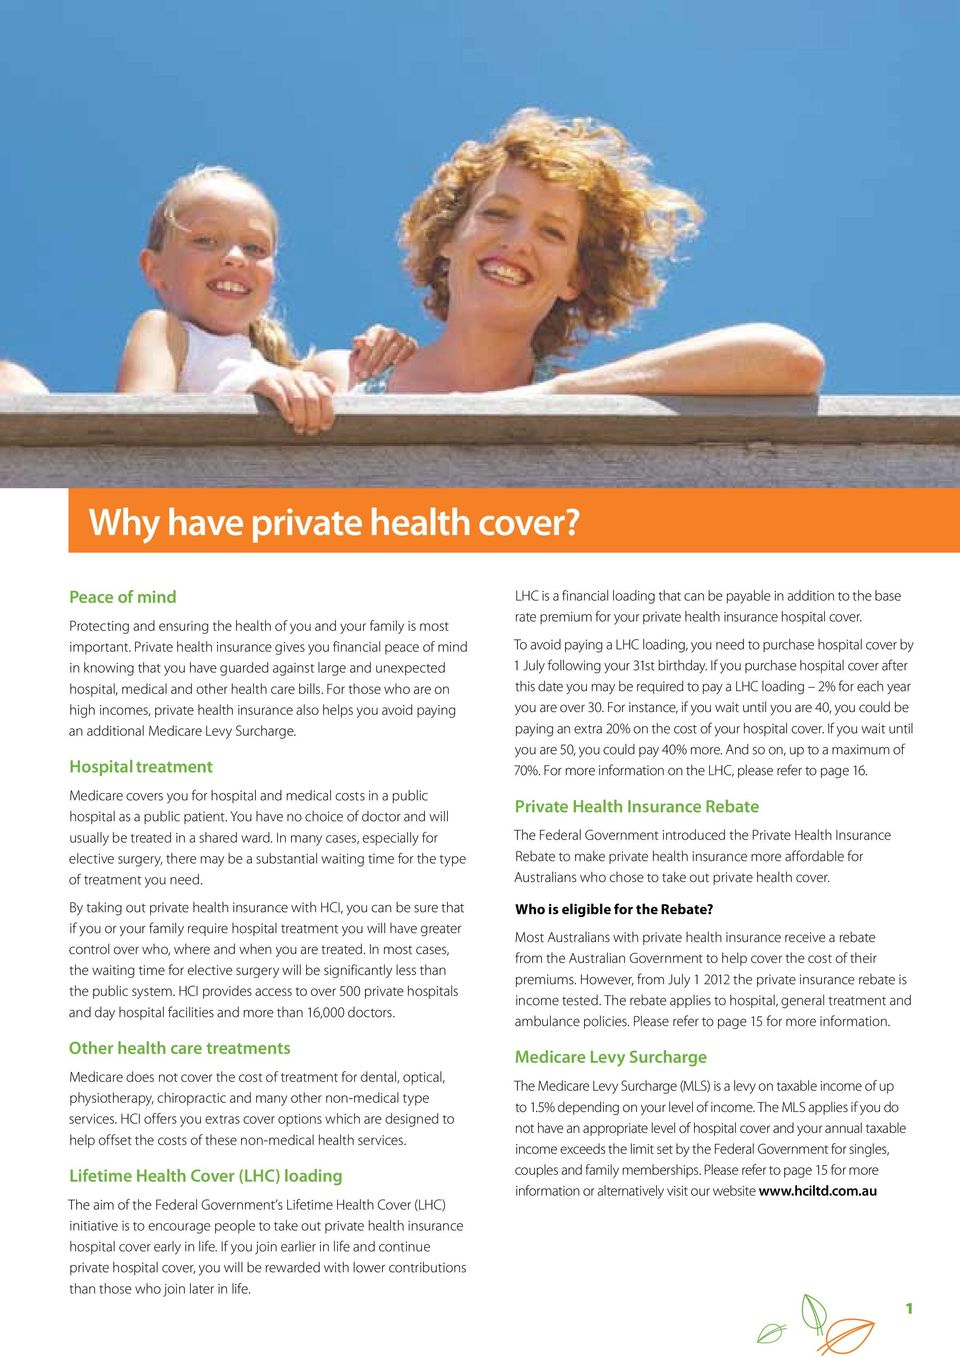 For those who are on high incomes, private health insurance also helps you avoid paying an additional Medicare Levy Surcharge.